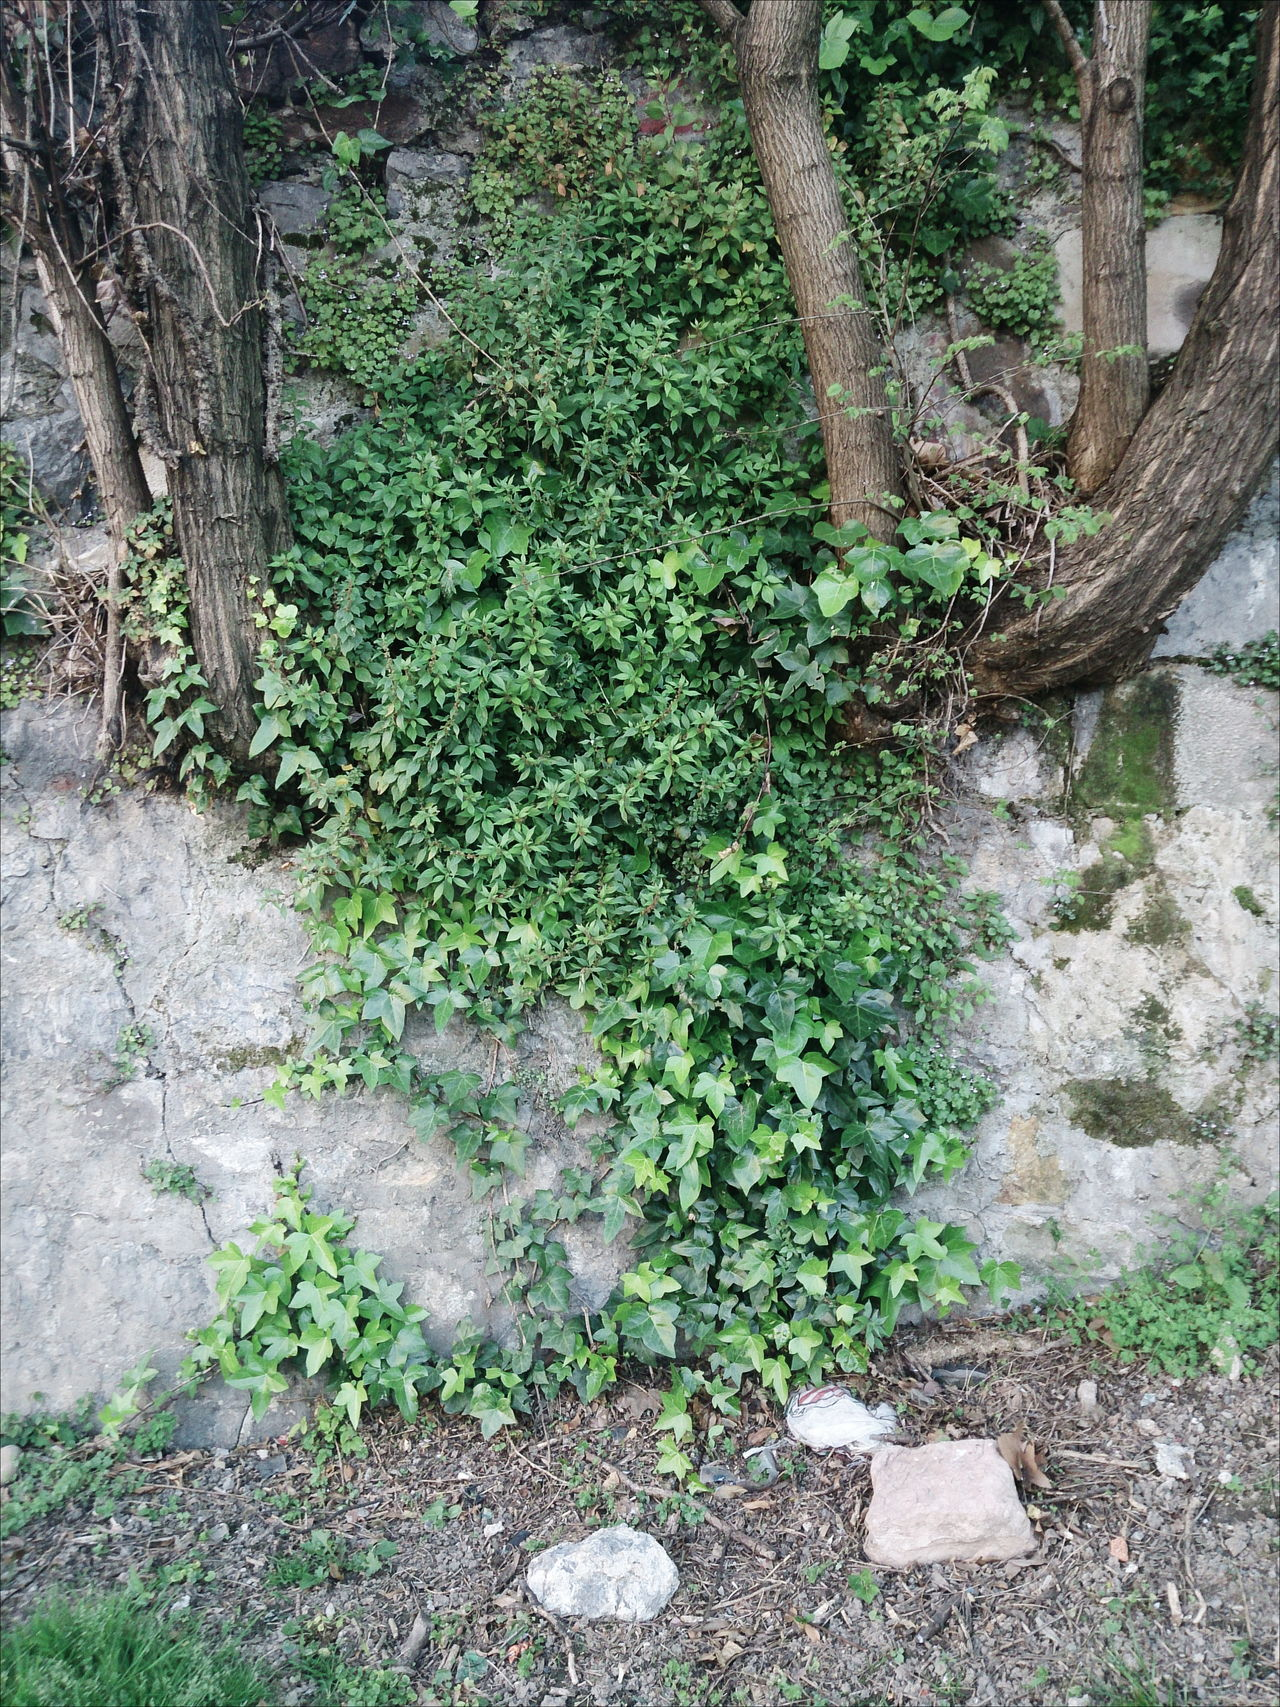 Born of the wall plants Beauty In Nature Day Forest Green Green Color Growing Growth Idyllic Landscape Lush Foliage Nature No People Non Urban Scene Non-urban Scene Outdoors Plant Scenics Tranquil Scene Tranquility Tree Tree Trunk WoodLand Woods